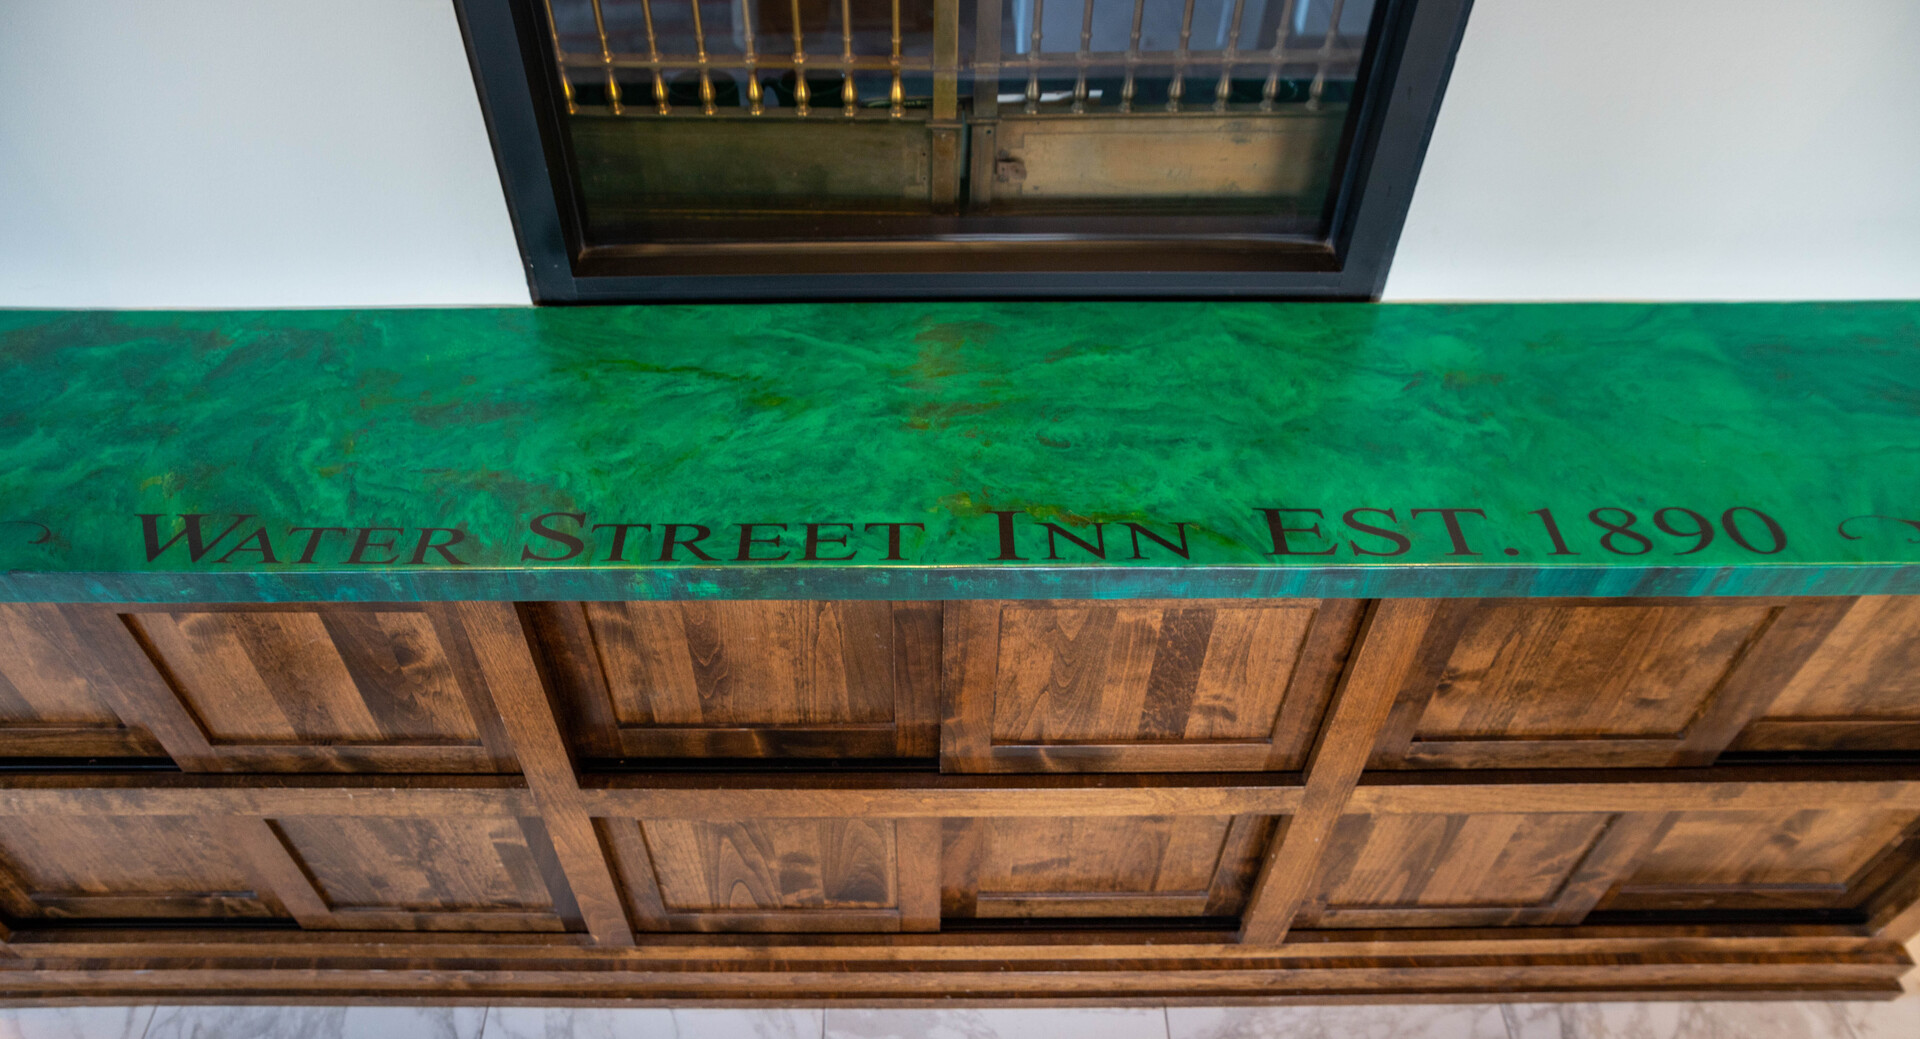 Granicrete countertops can be found in two locations in the Water Street Inn's lobby. The first is the check-in desk, which boldly greets new guests with its swirled kelly green color that also features a vibrant green inlay. On the other side of the room, another Granicrete countertop is used for the coffee bar.